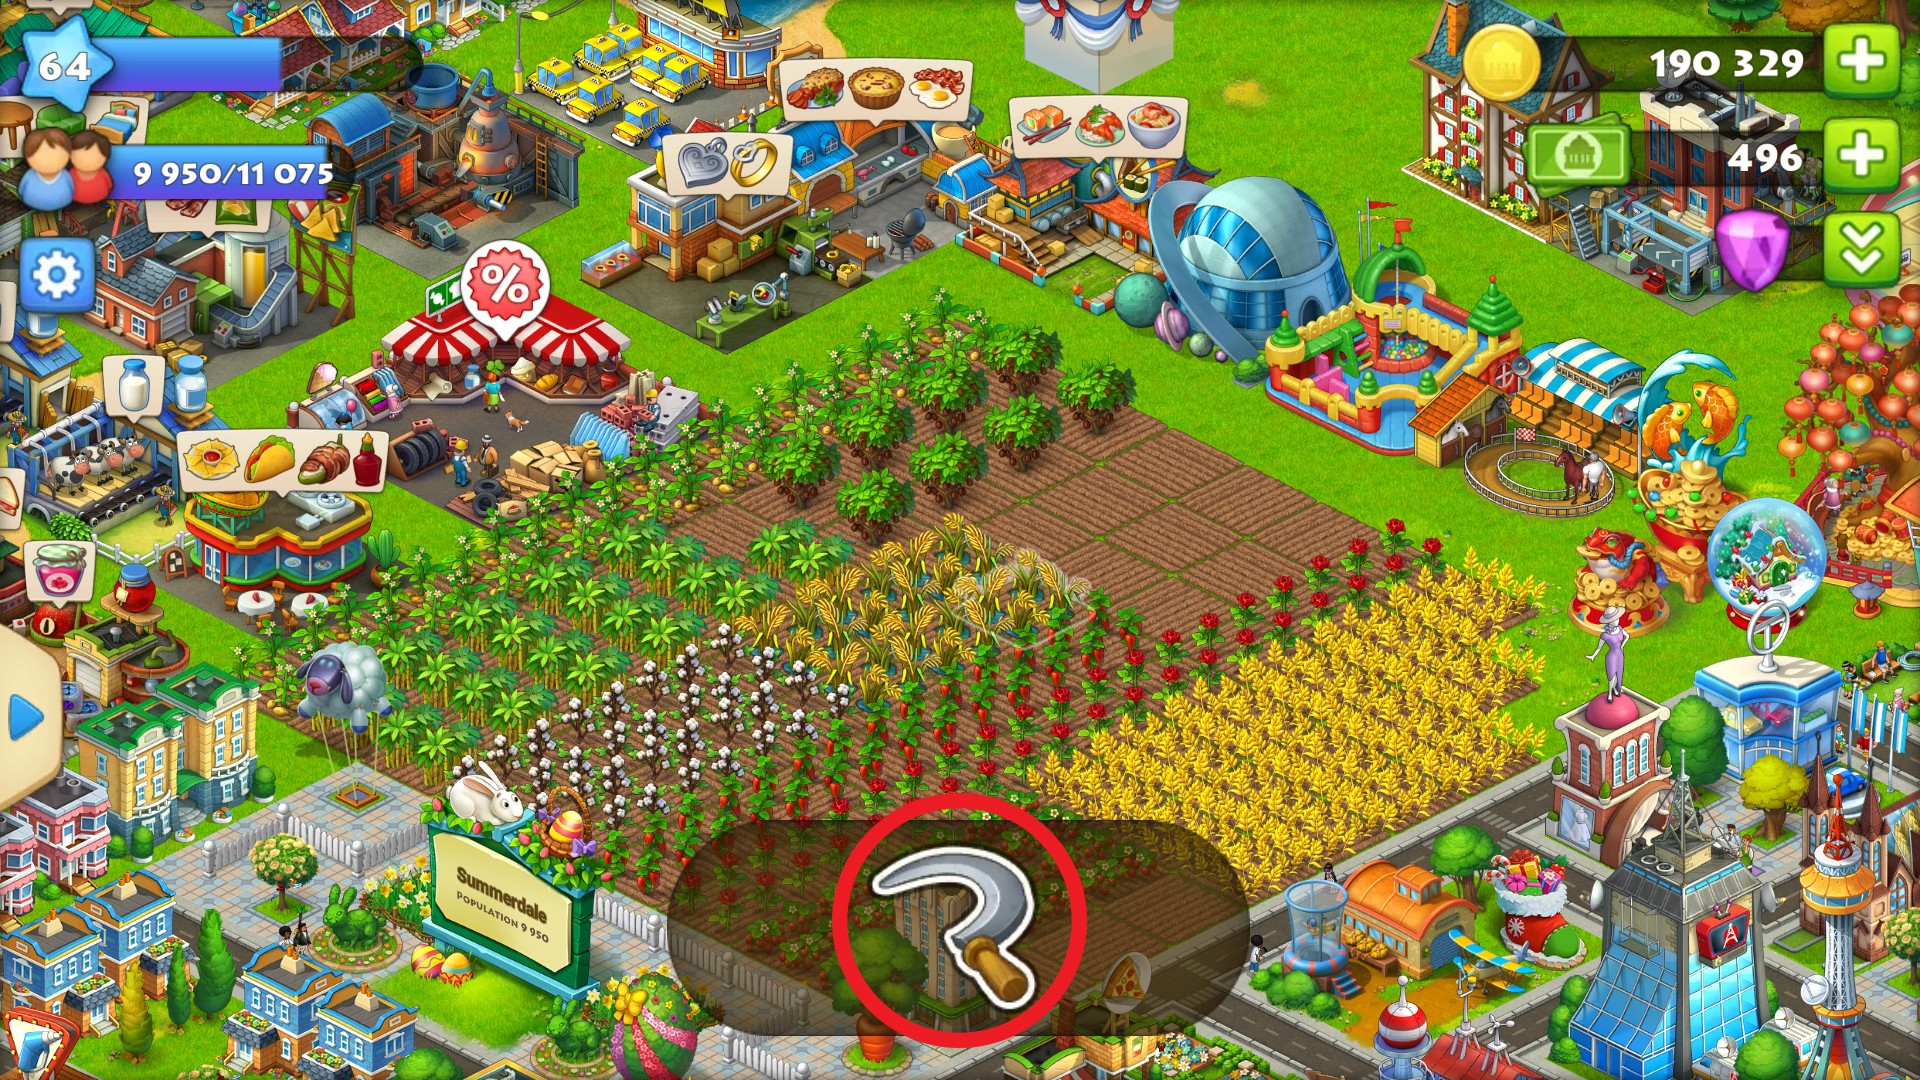 Playrix's Township - Aarthi Padmanabhan - Medium